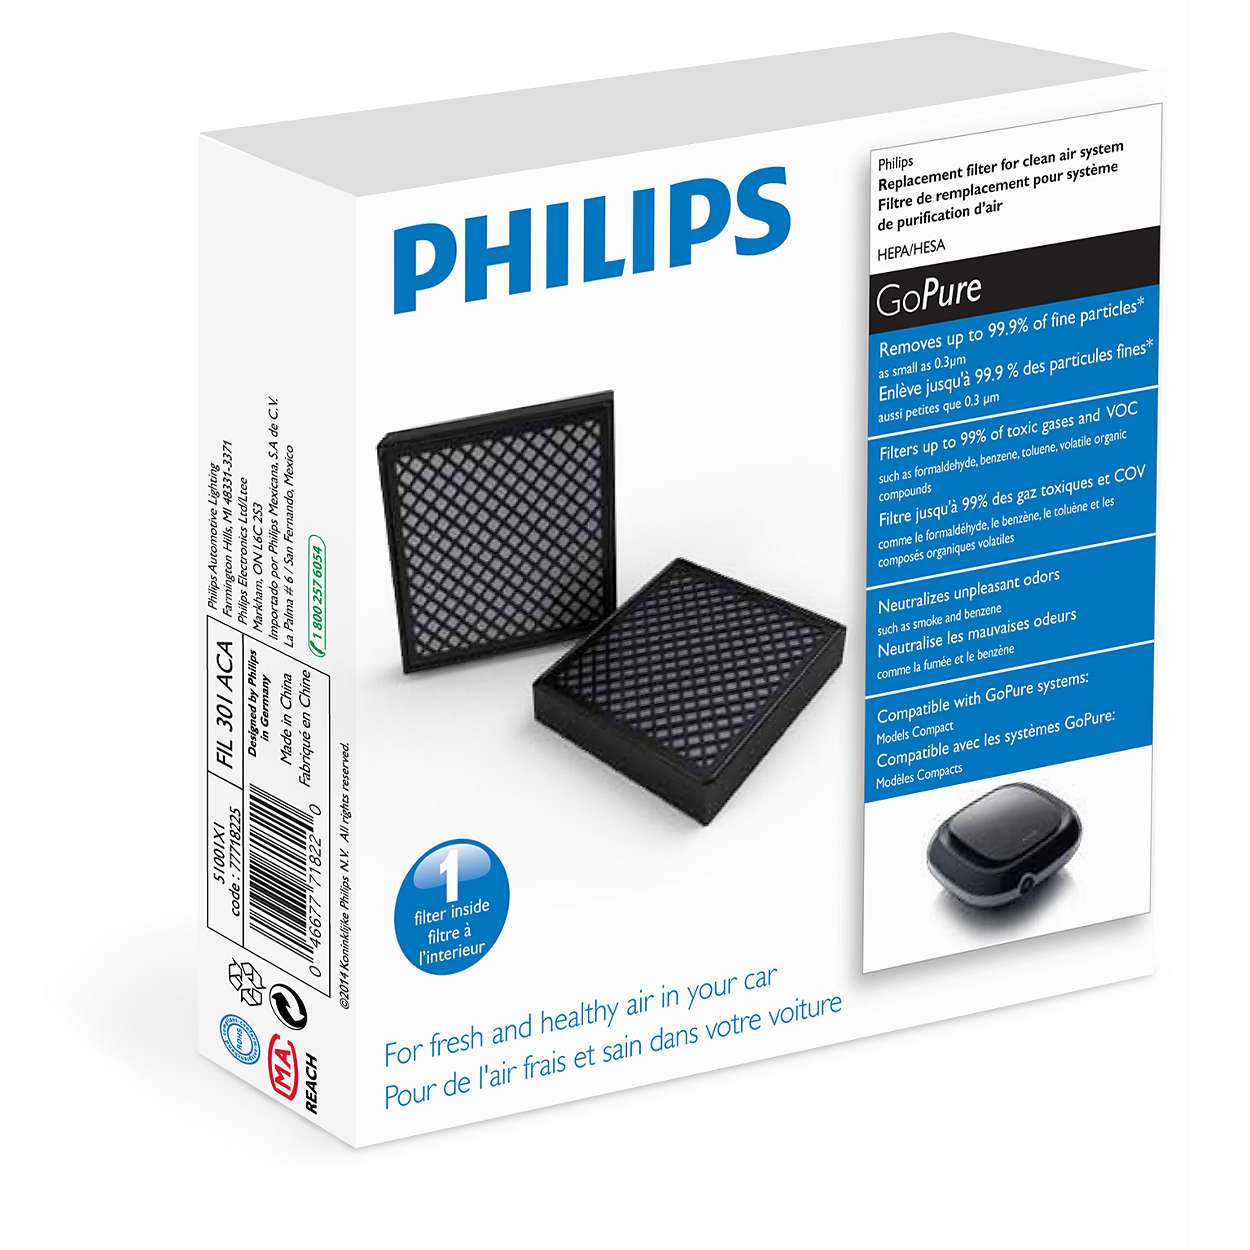 GoPure Replacement filter for clean air system 51001X1 | Philips